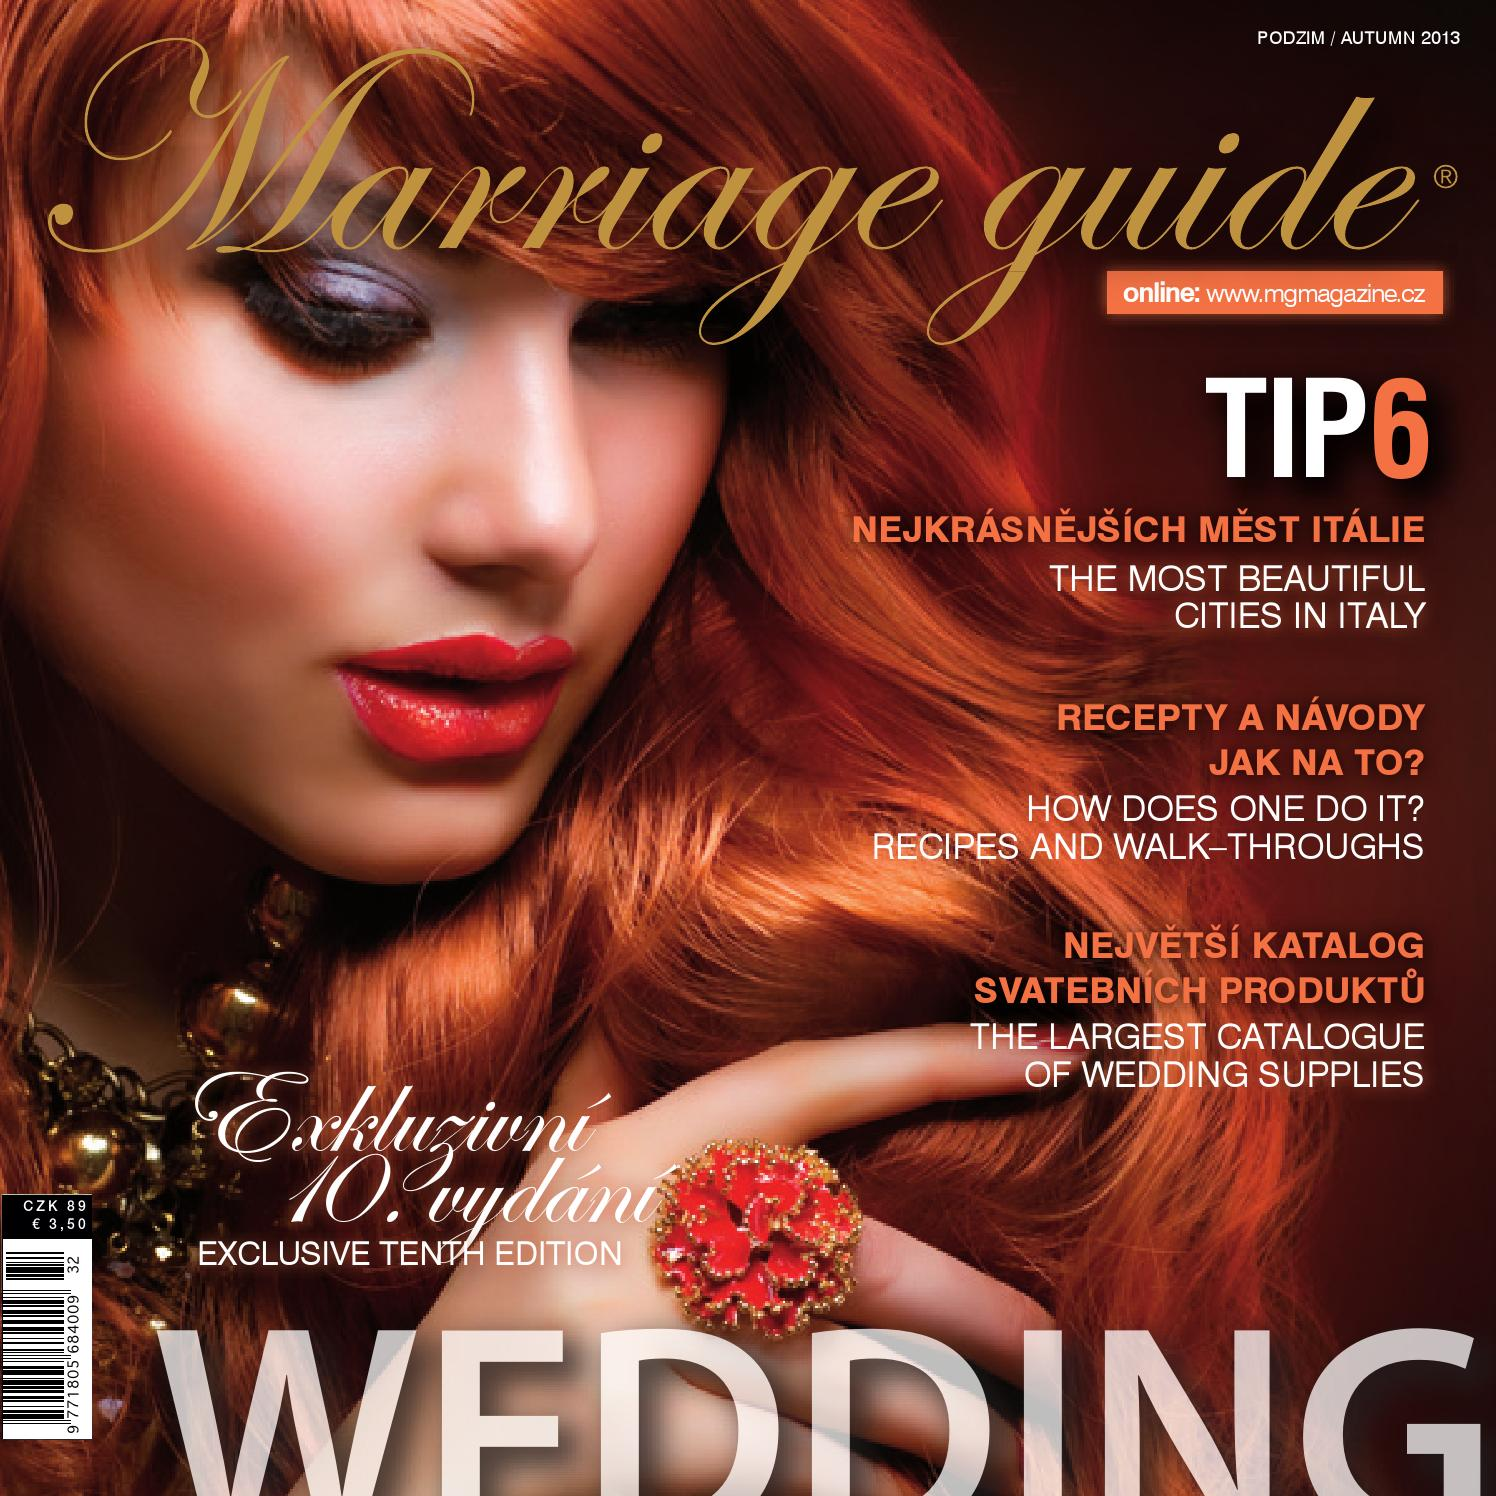 Marriage guide autumn 2013 gold edition by Kollman Partners s.r.o. - issuu 38cdcd2e86